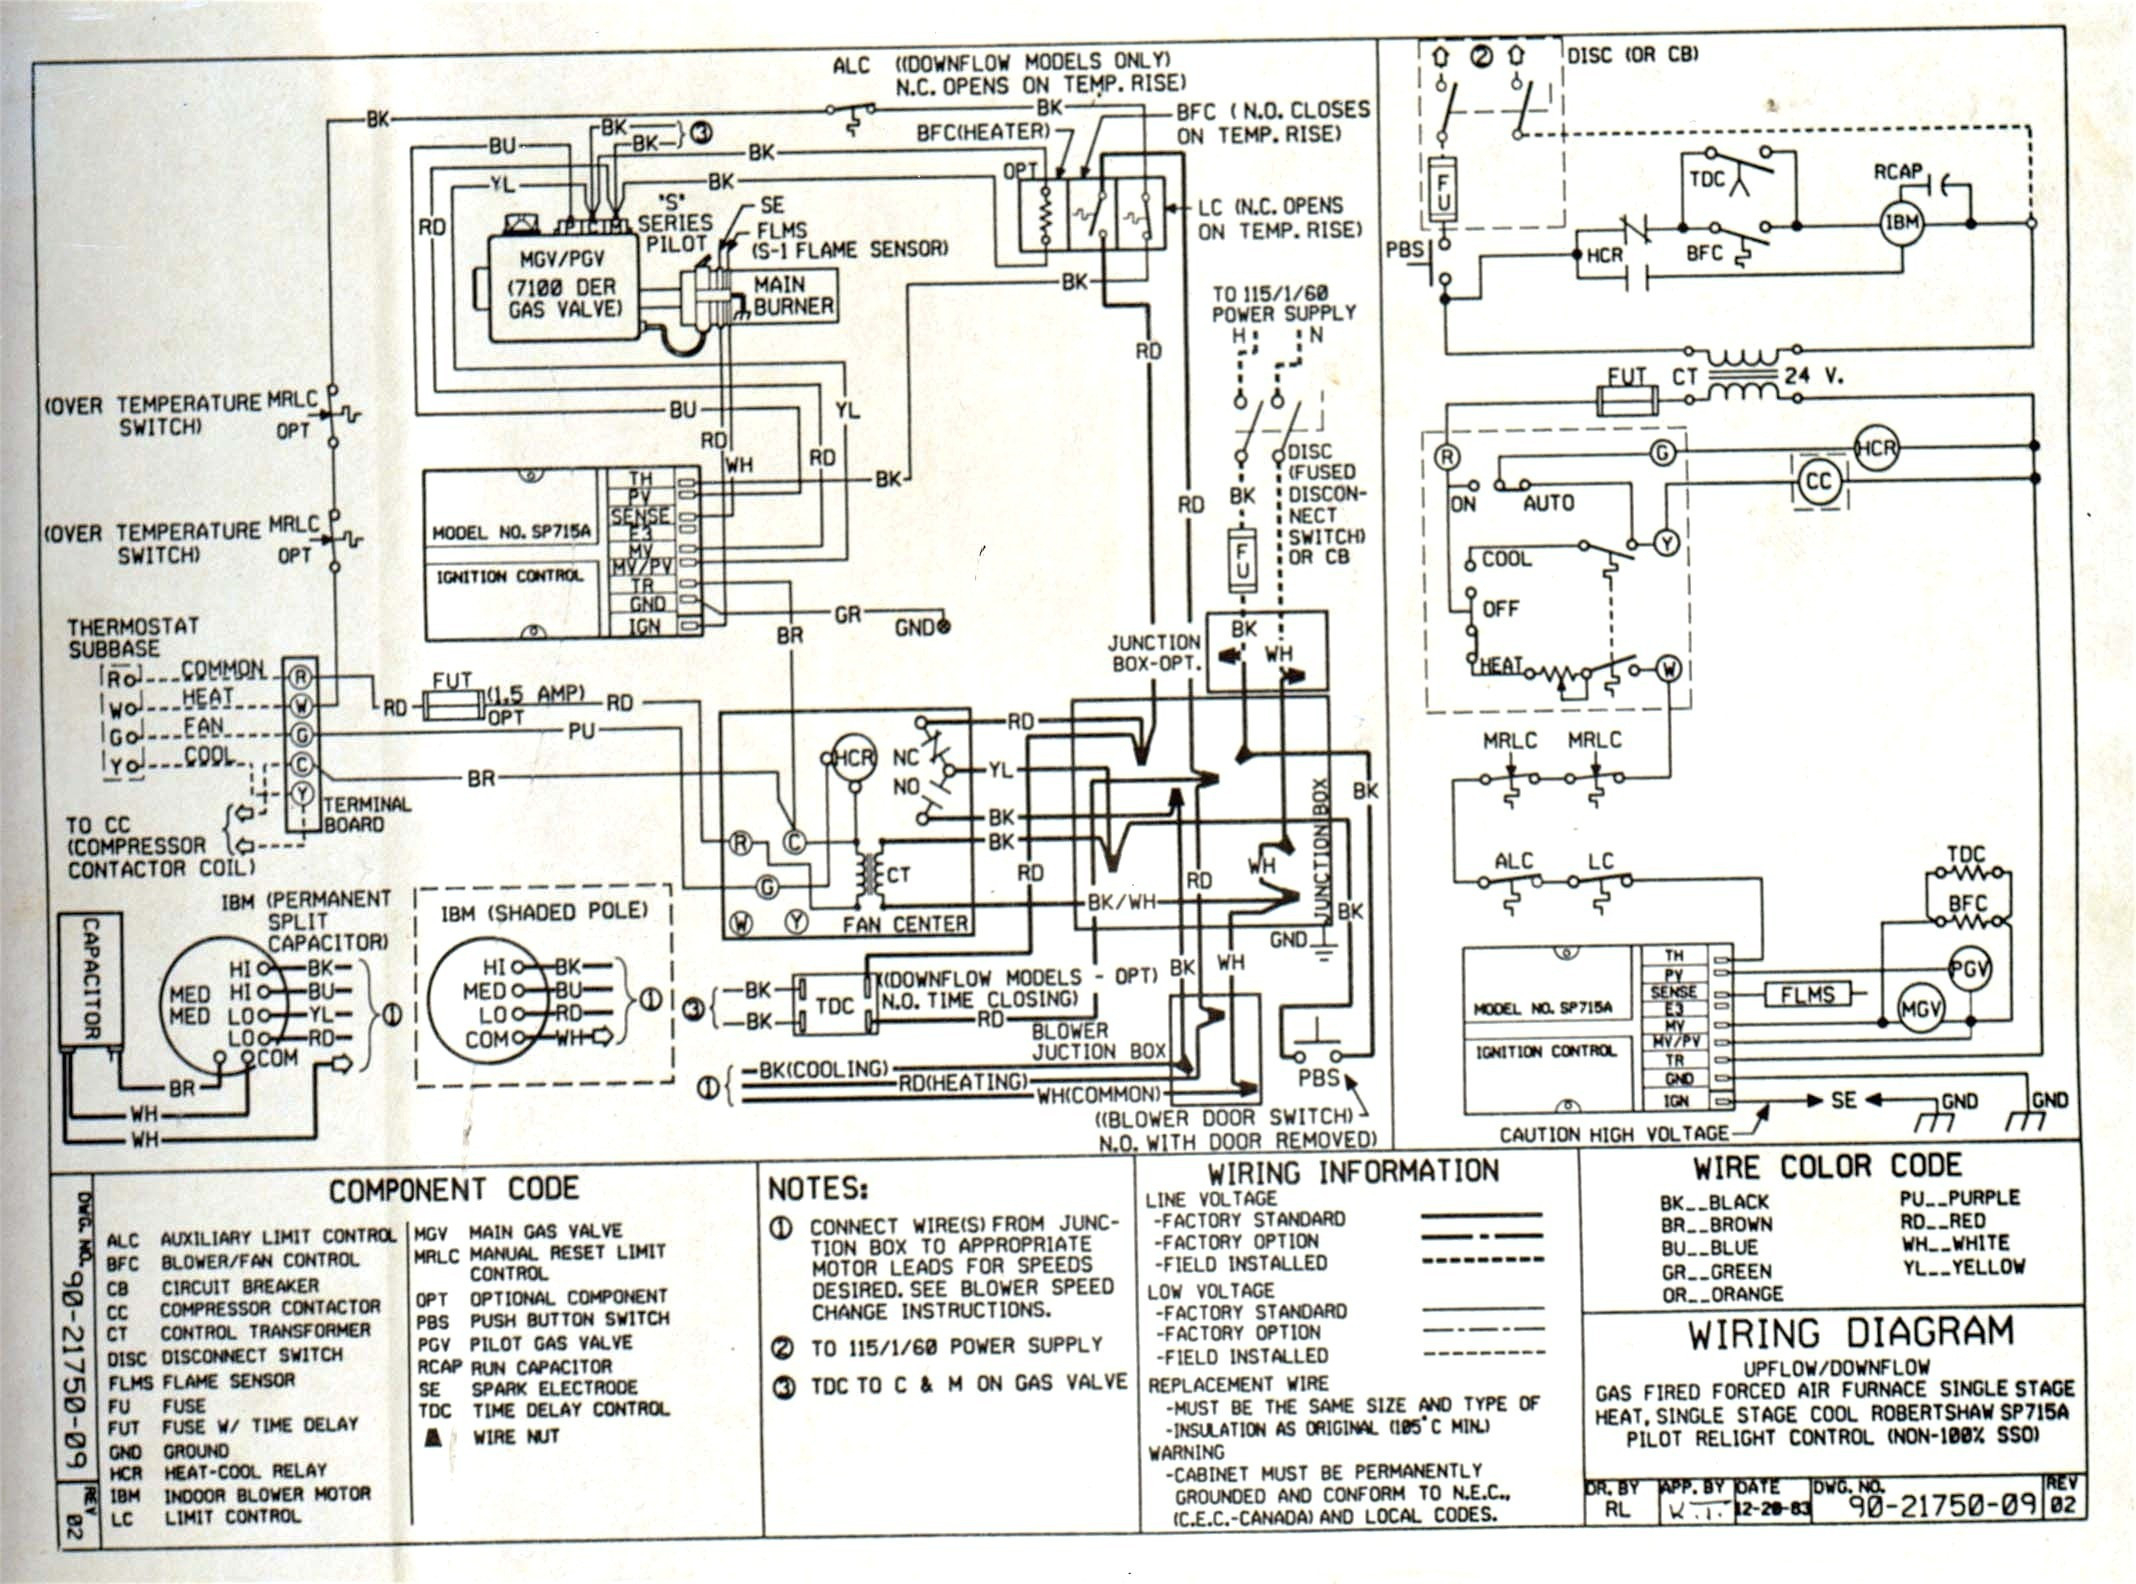 ac disconnect wiring diagram Collection-carrier ac wiring diagram Collection Wiring Diagram Ac Split Sanyo Fresh Wiring Diagram Indoor Ac 20-c